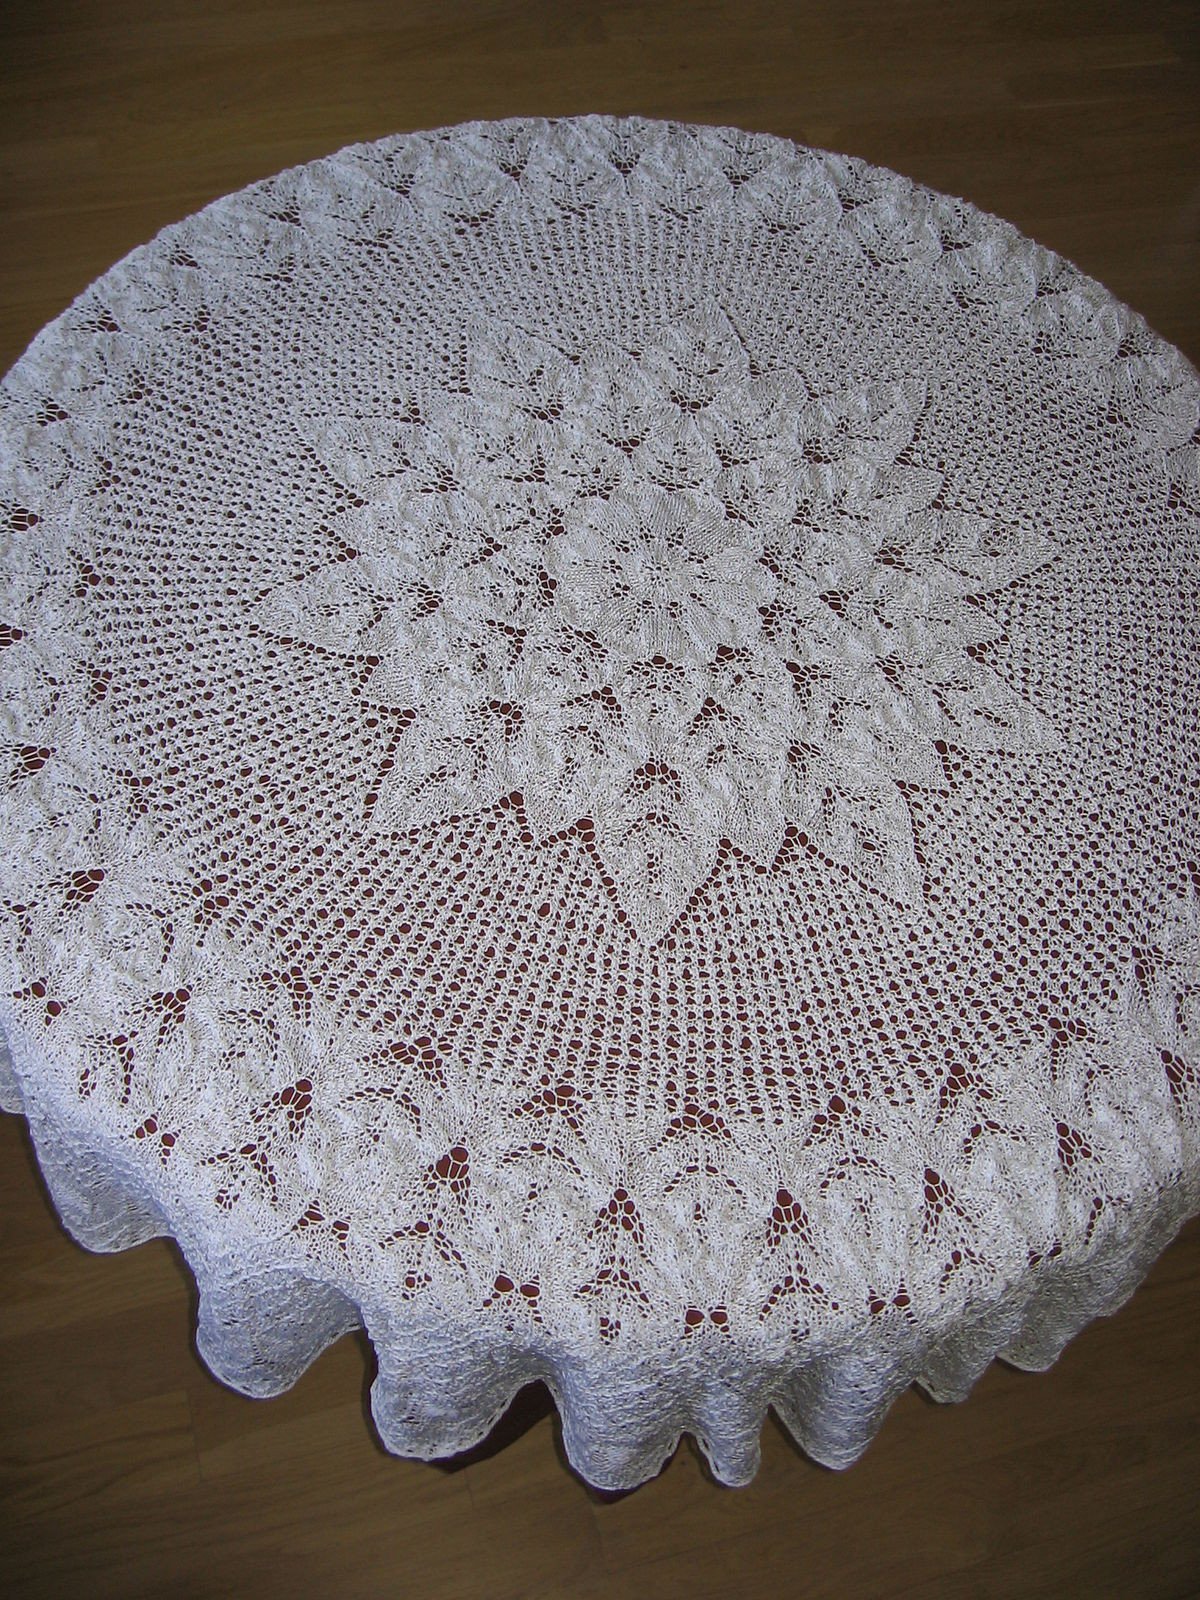 Lace Pattern Best Of Lace Knitting Of Delightful 40 Images Lace Pattern